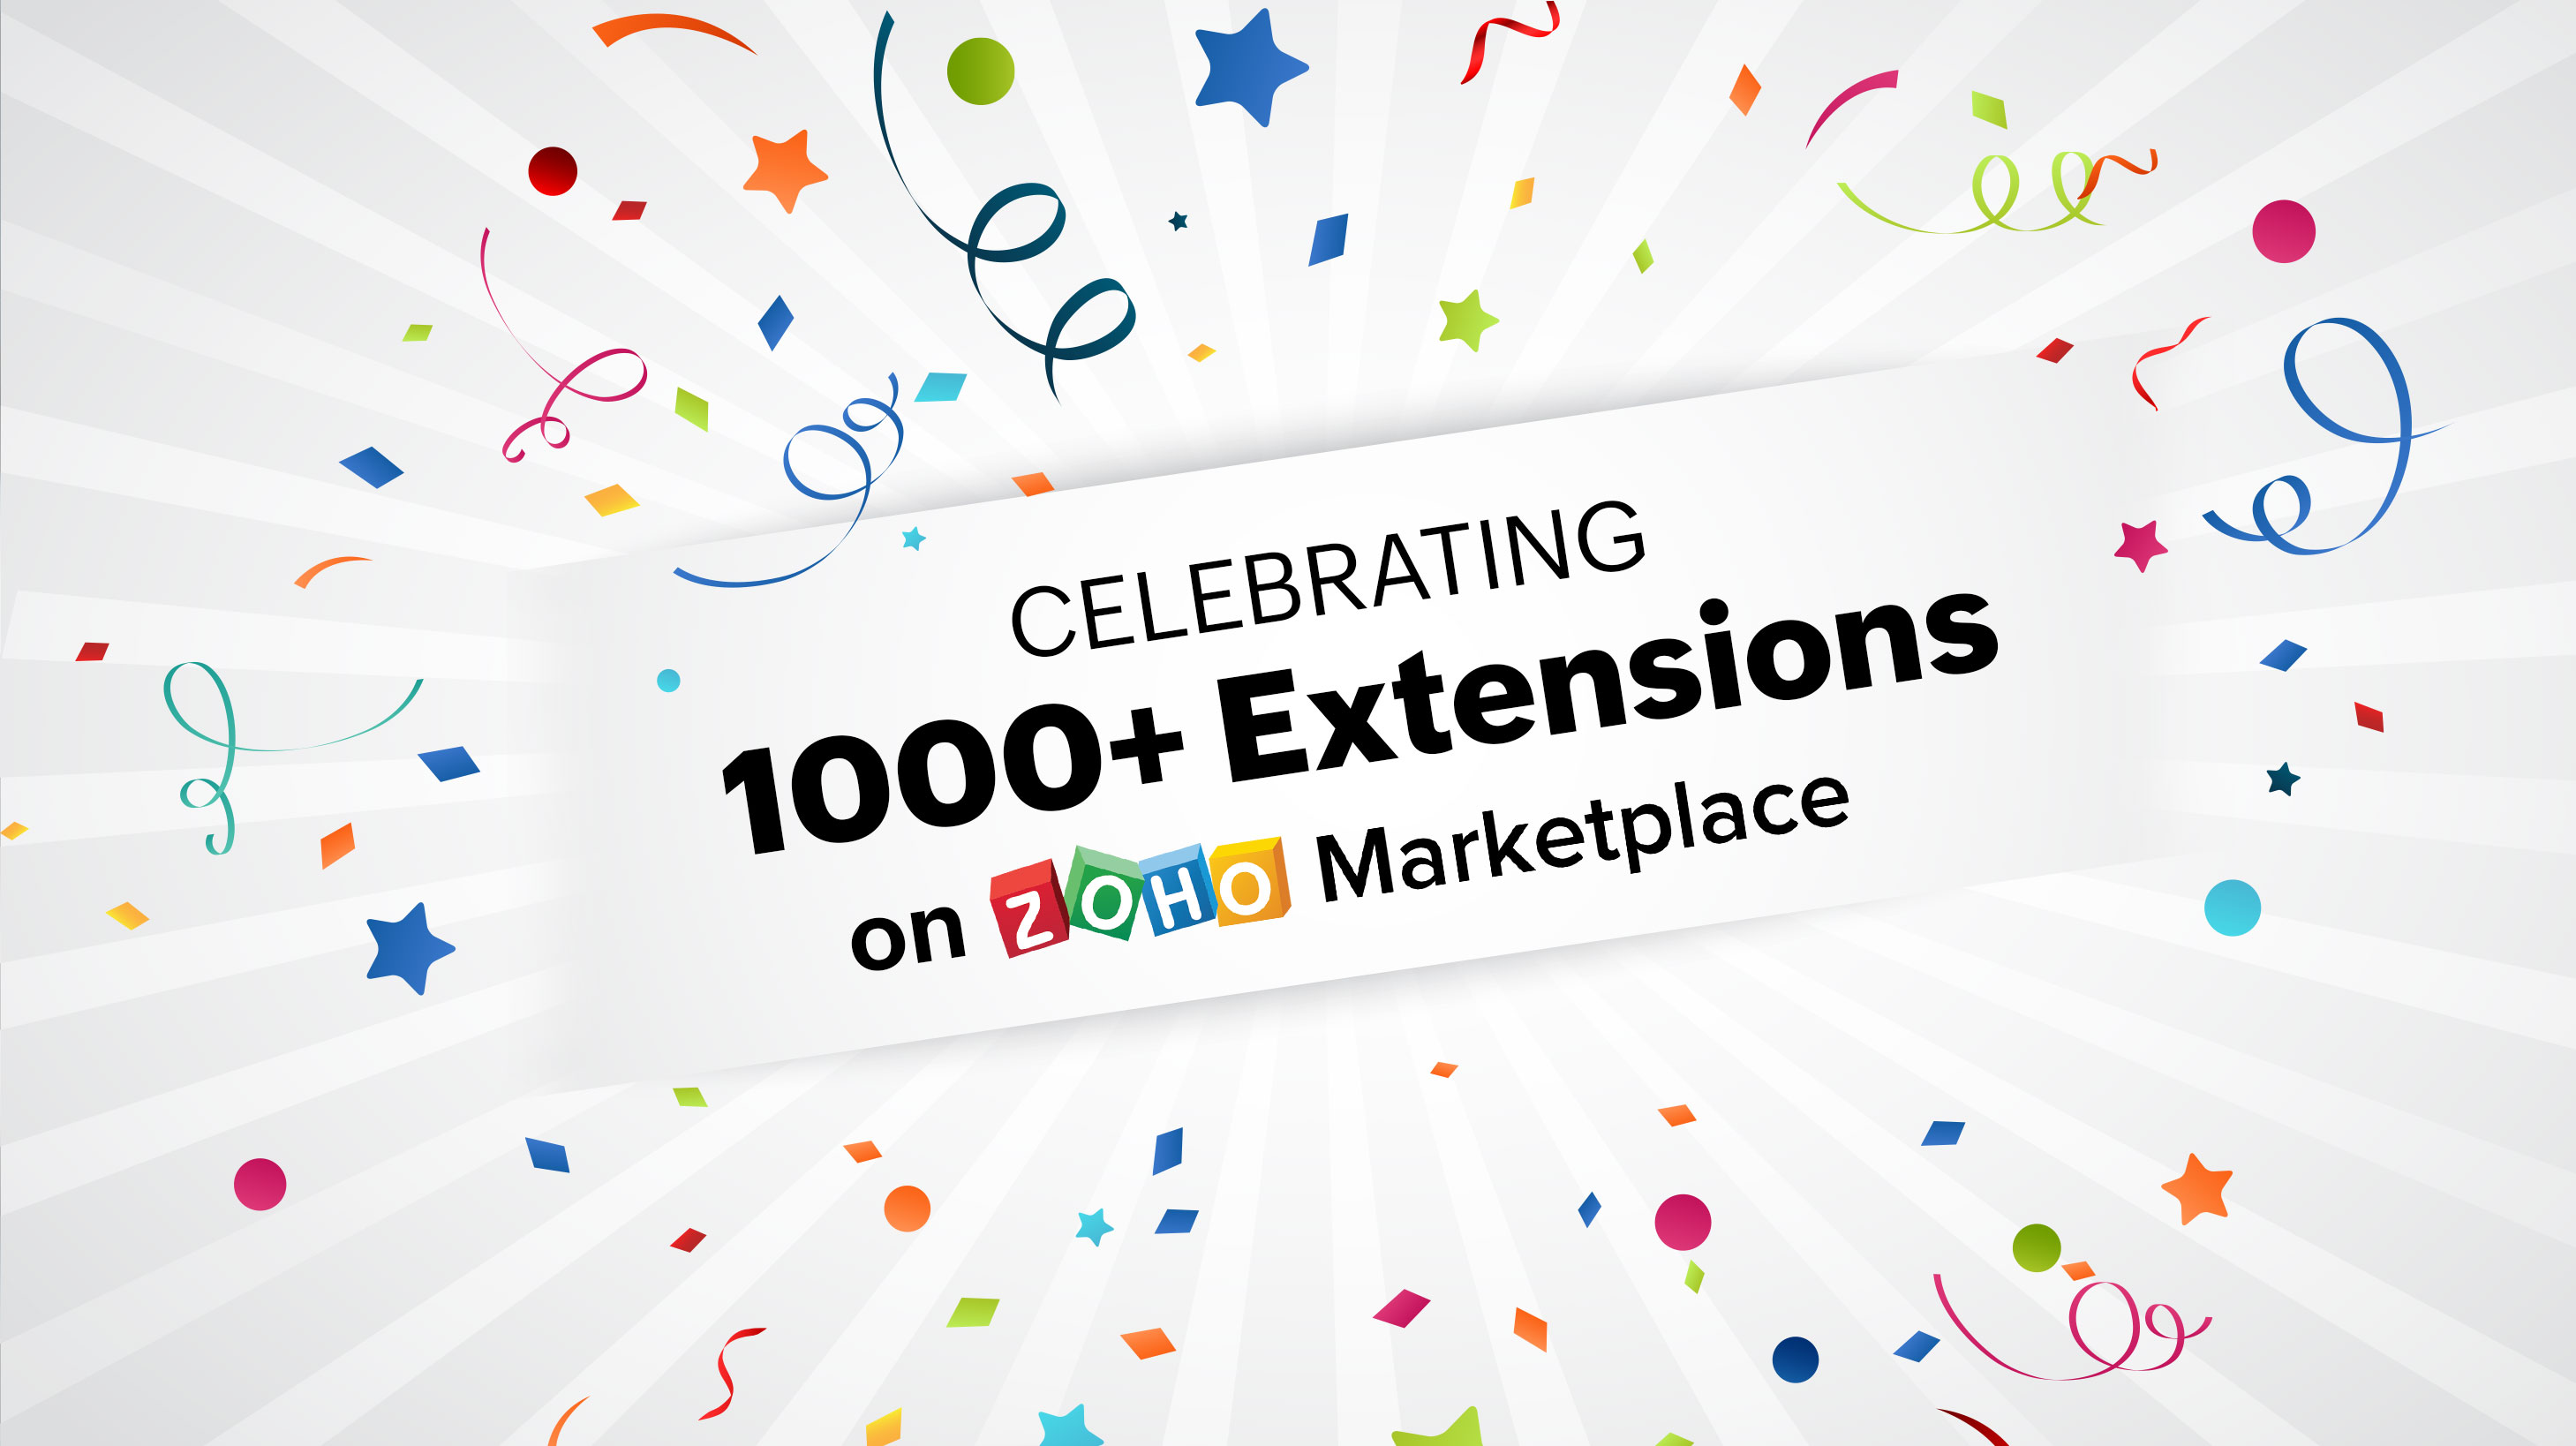 Celebrating 1000+ extensions on Zoho Marketplace